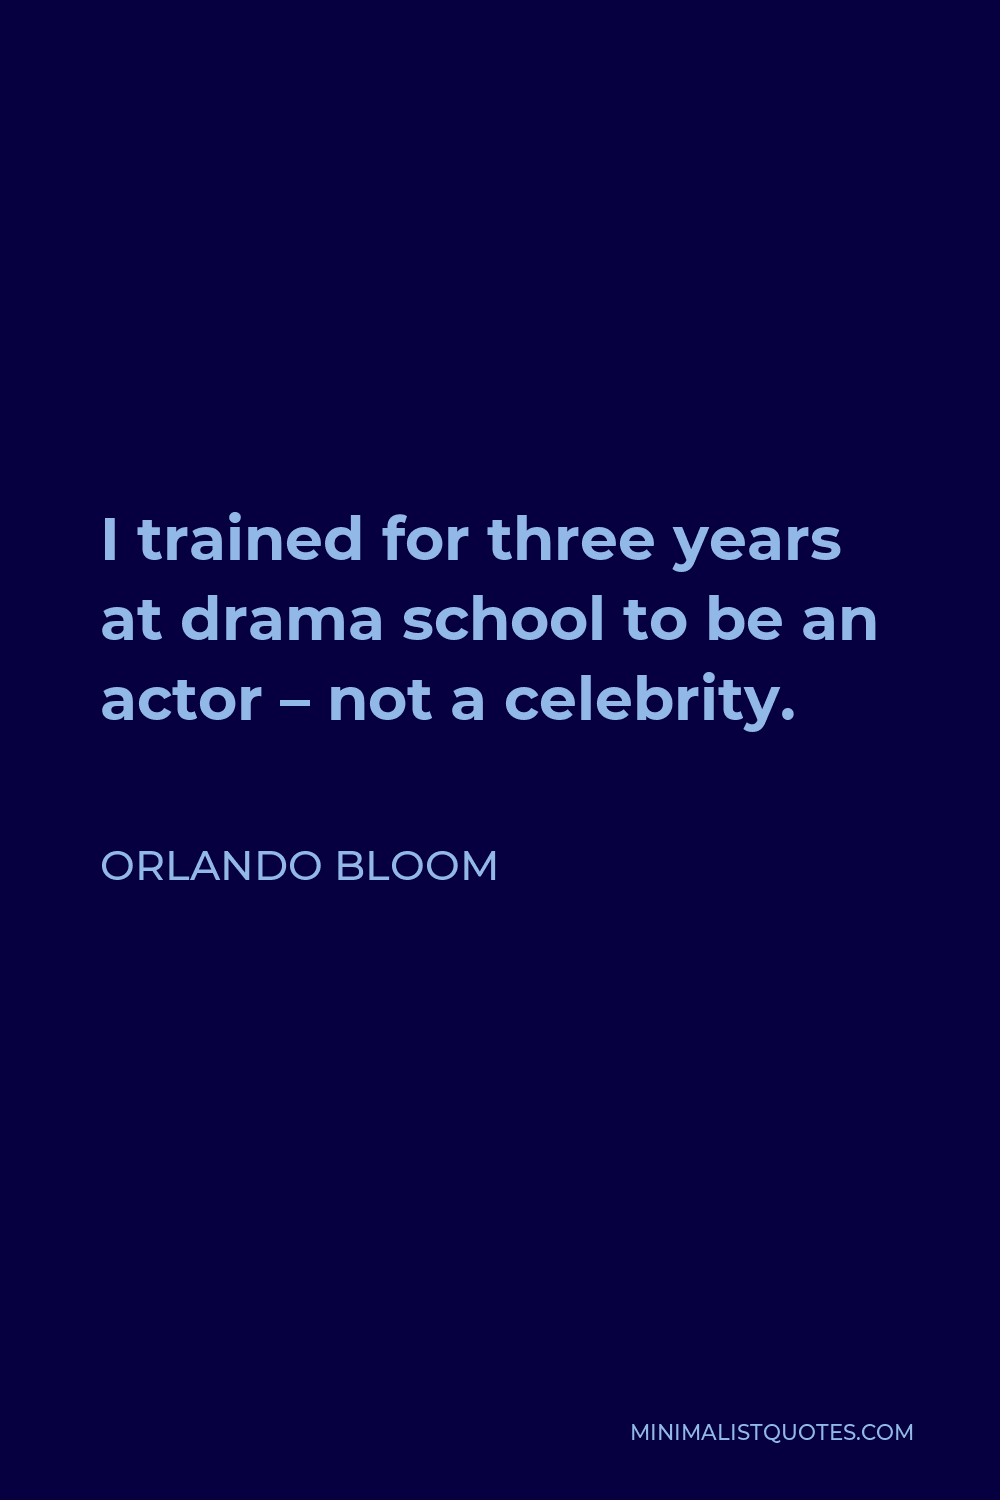 Orlando Bloom Quote - I trained for three years at drama school to be an actor – not a celebrity.